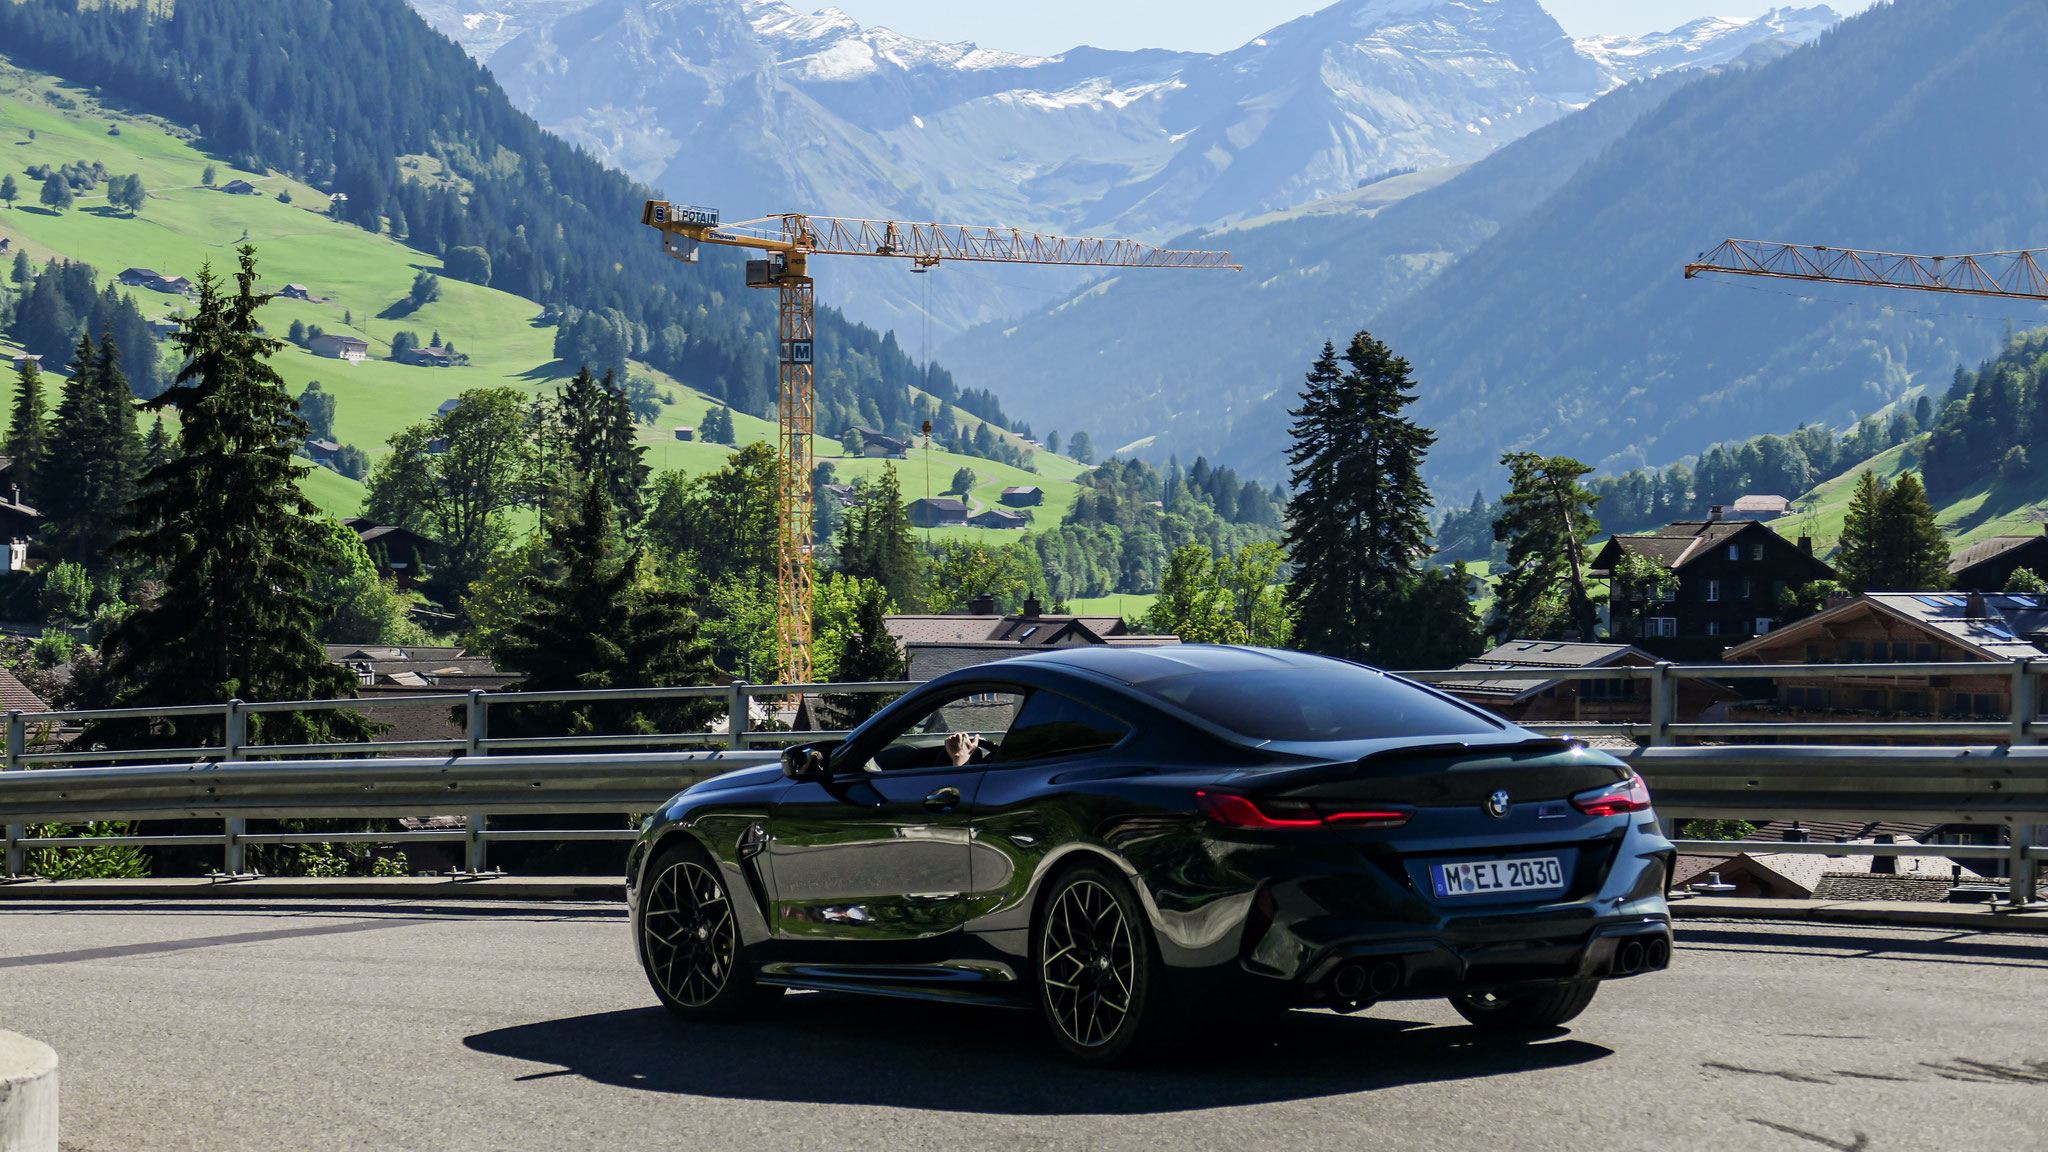 BMW M8 Competition - M-EI-2030